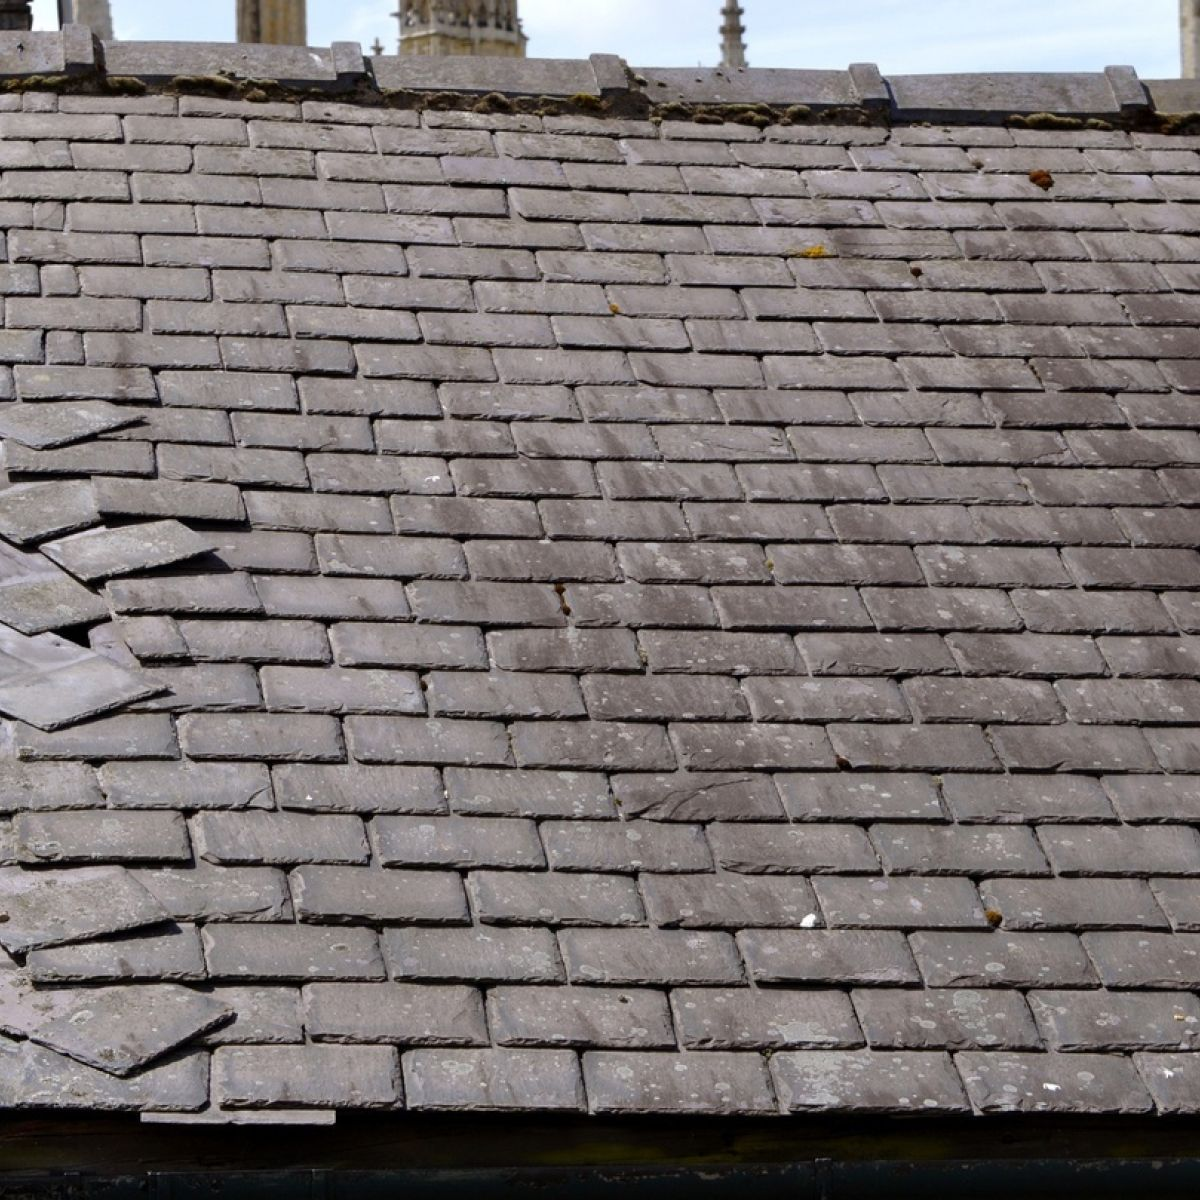 How To Fix A Loose Slate Roof Tile In 2020 Slate Roof Tiles Slate Roof Roof Tiles